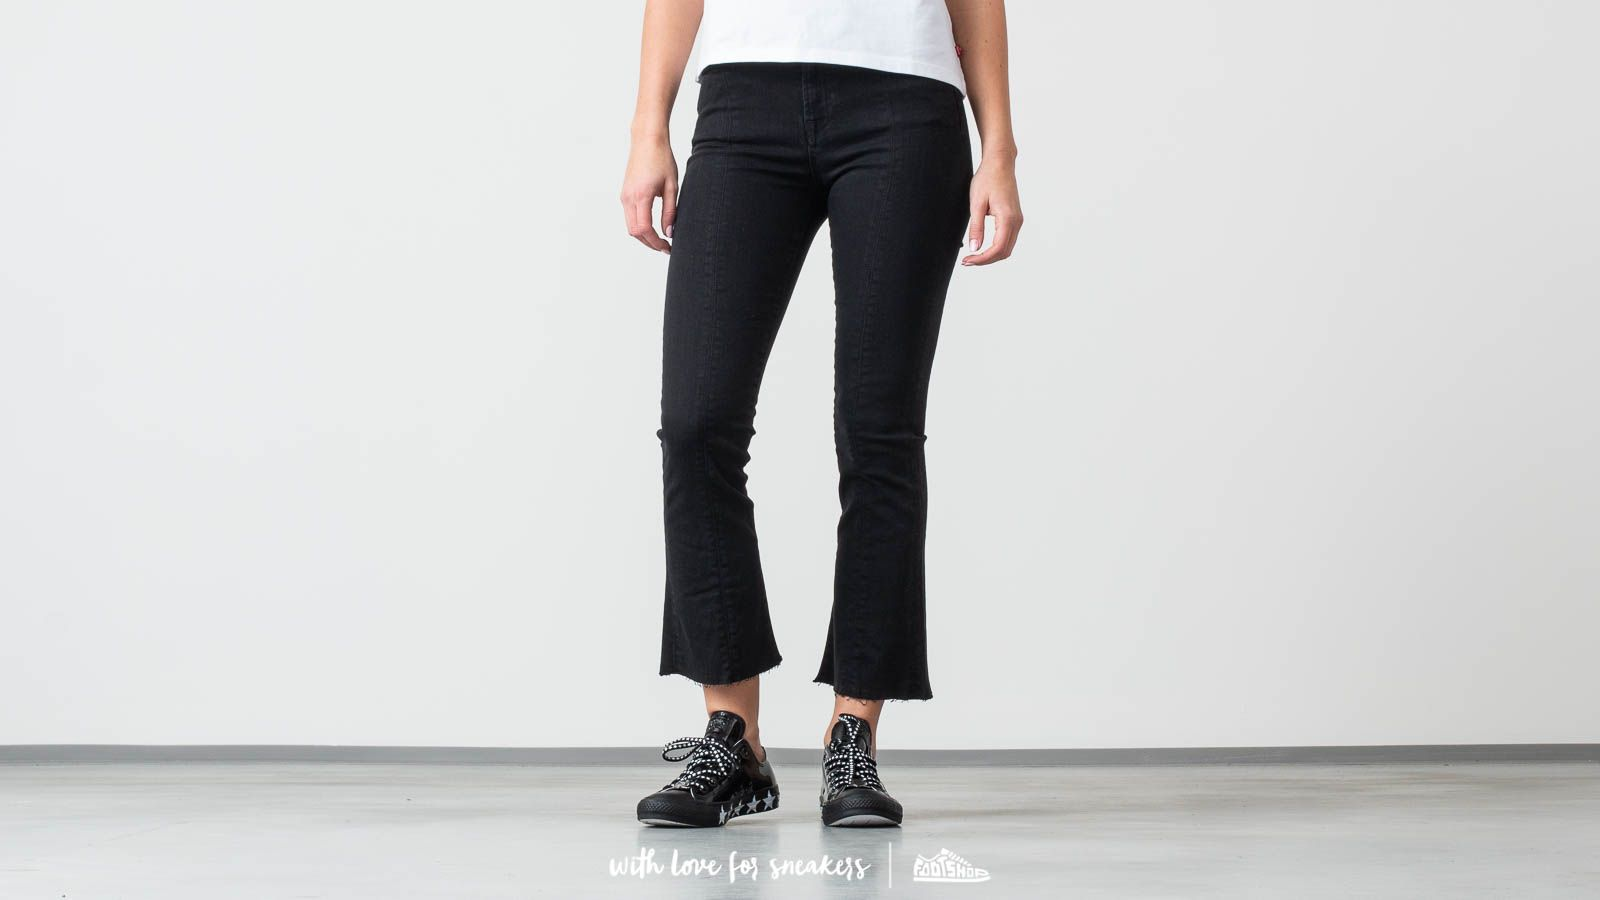 Pantalones SELECTED Lana High Waist Bootcut Jeans Black Denim